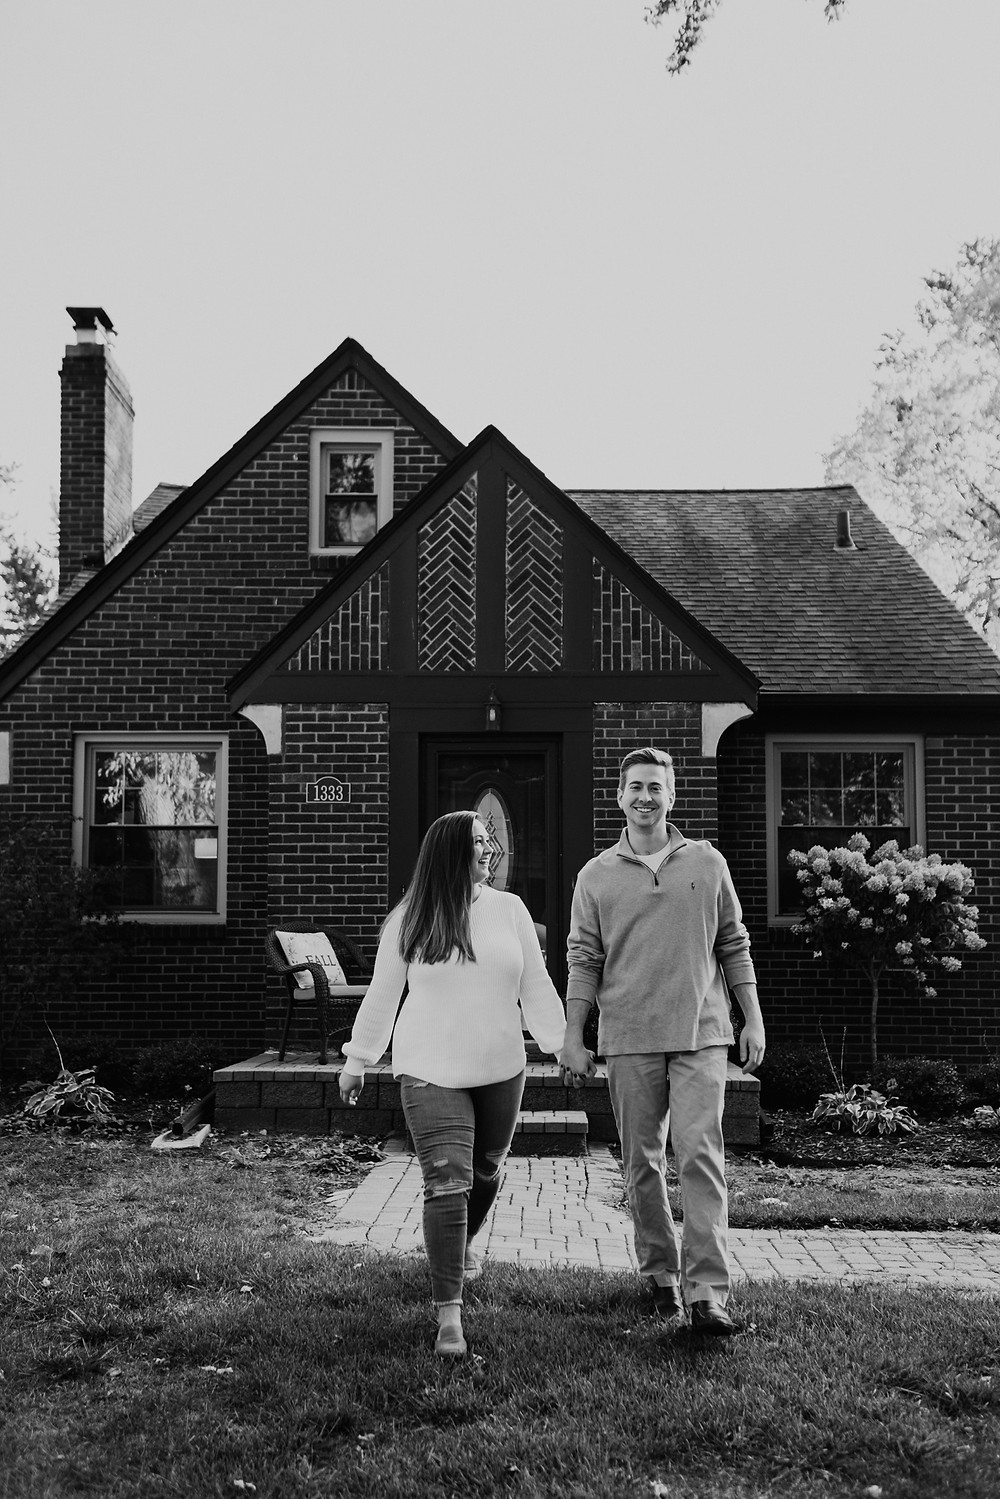 Grosse Pointe engagement photos at home. Photographed by Nicole Leanne Photography.